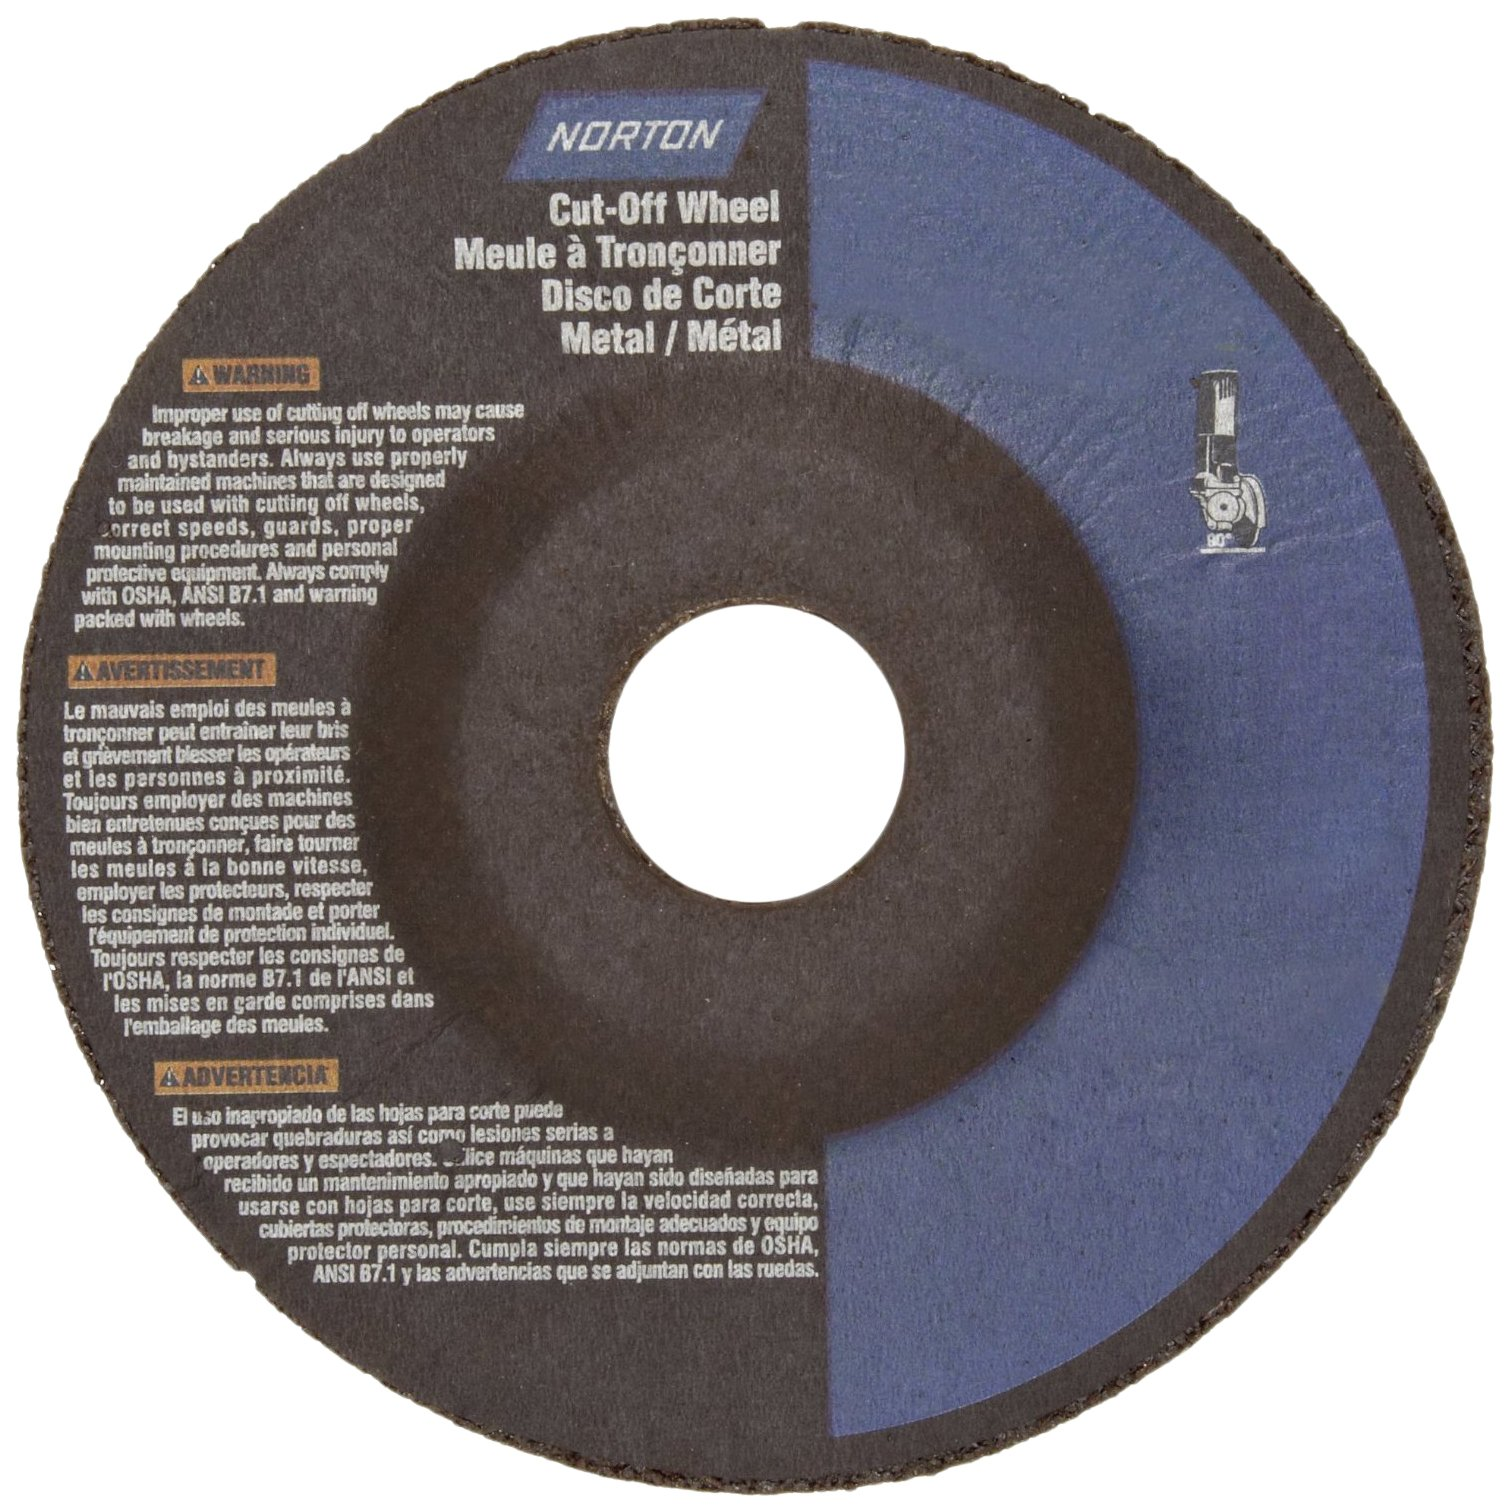 Norton Metal Stainless Steel Right Cut Small Diameter Reinforced Abrasive Cut-Off Wheel, Type 27, Aluminum Oxide, 7/8'' Arbor, 4-1/2'' Diameter x 0.045'' Thickness  (Pack of 25)